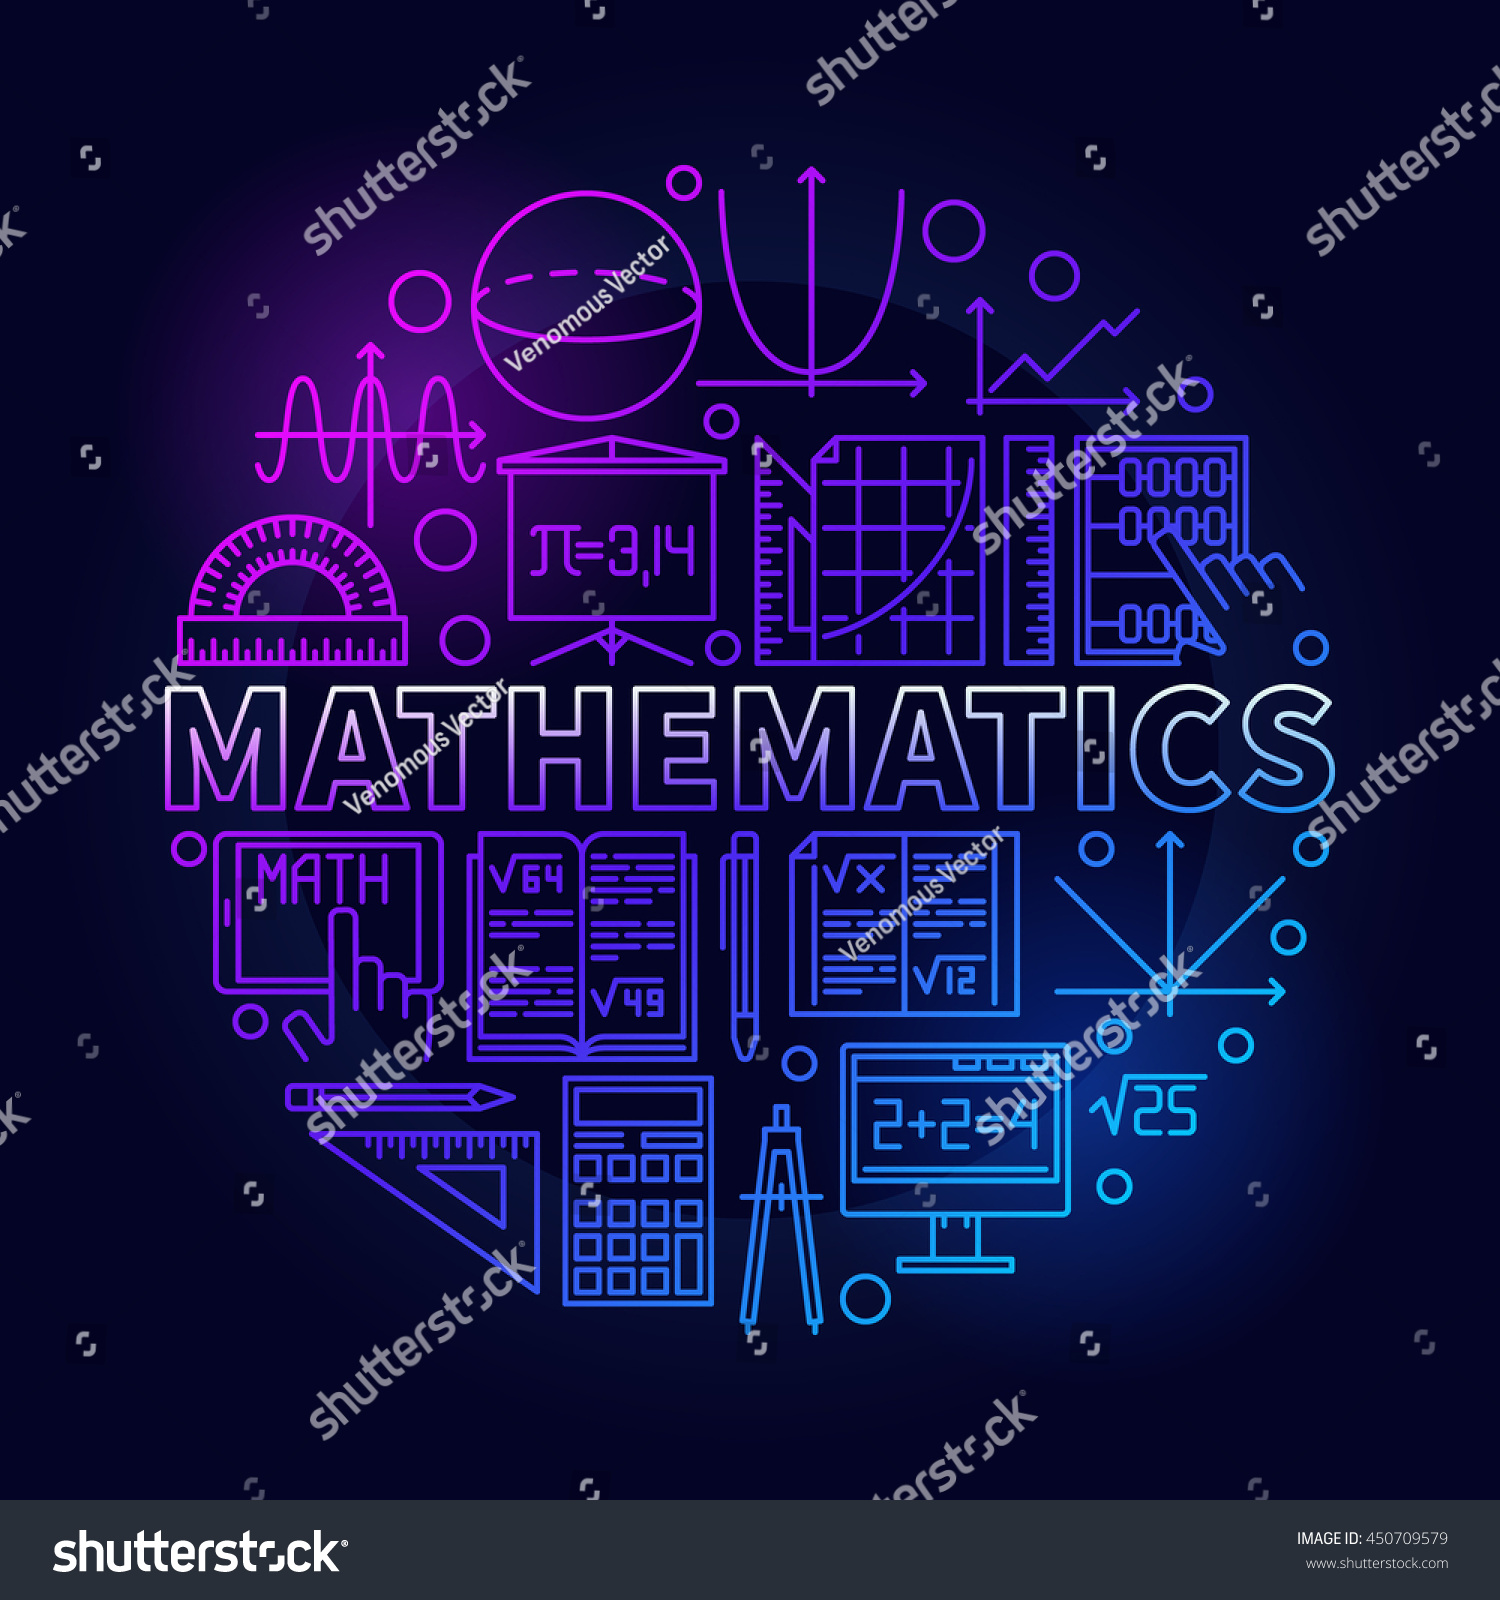 Math linear symbol vector bright round stock vector 450709579 math linear symbol vector bright round school education mathematical symbol or circle background design biocorpaavc Choice Image